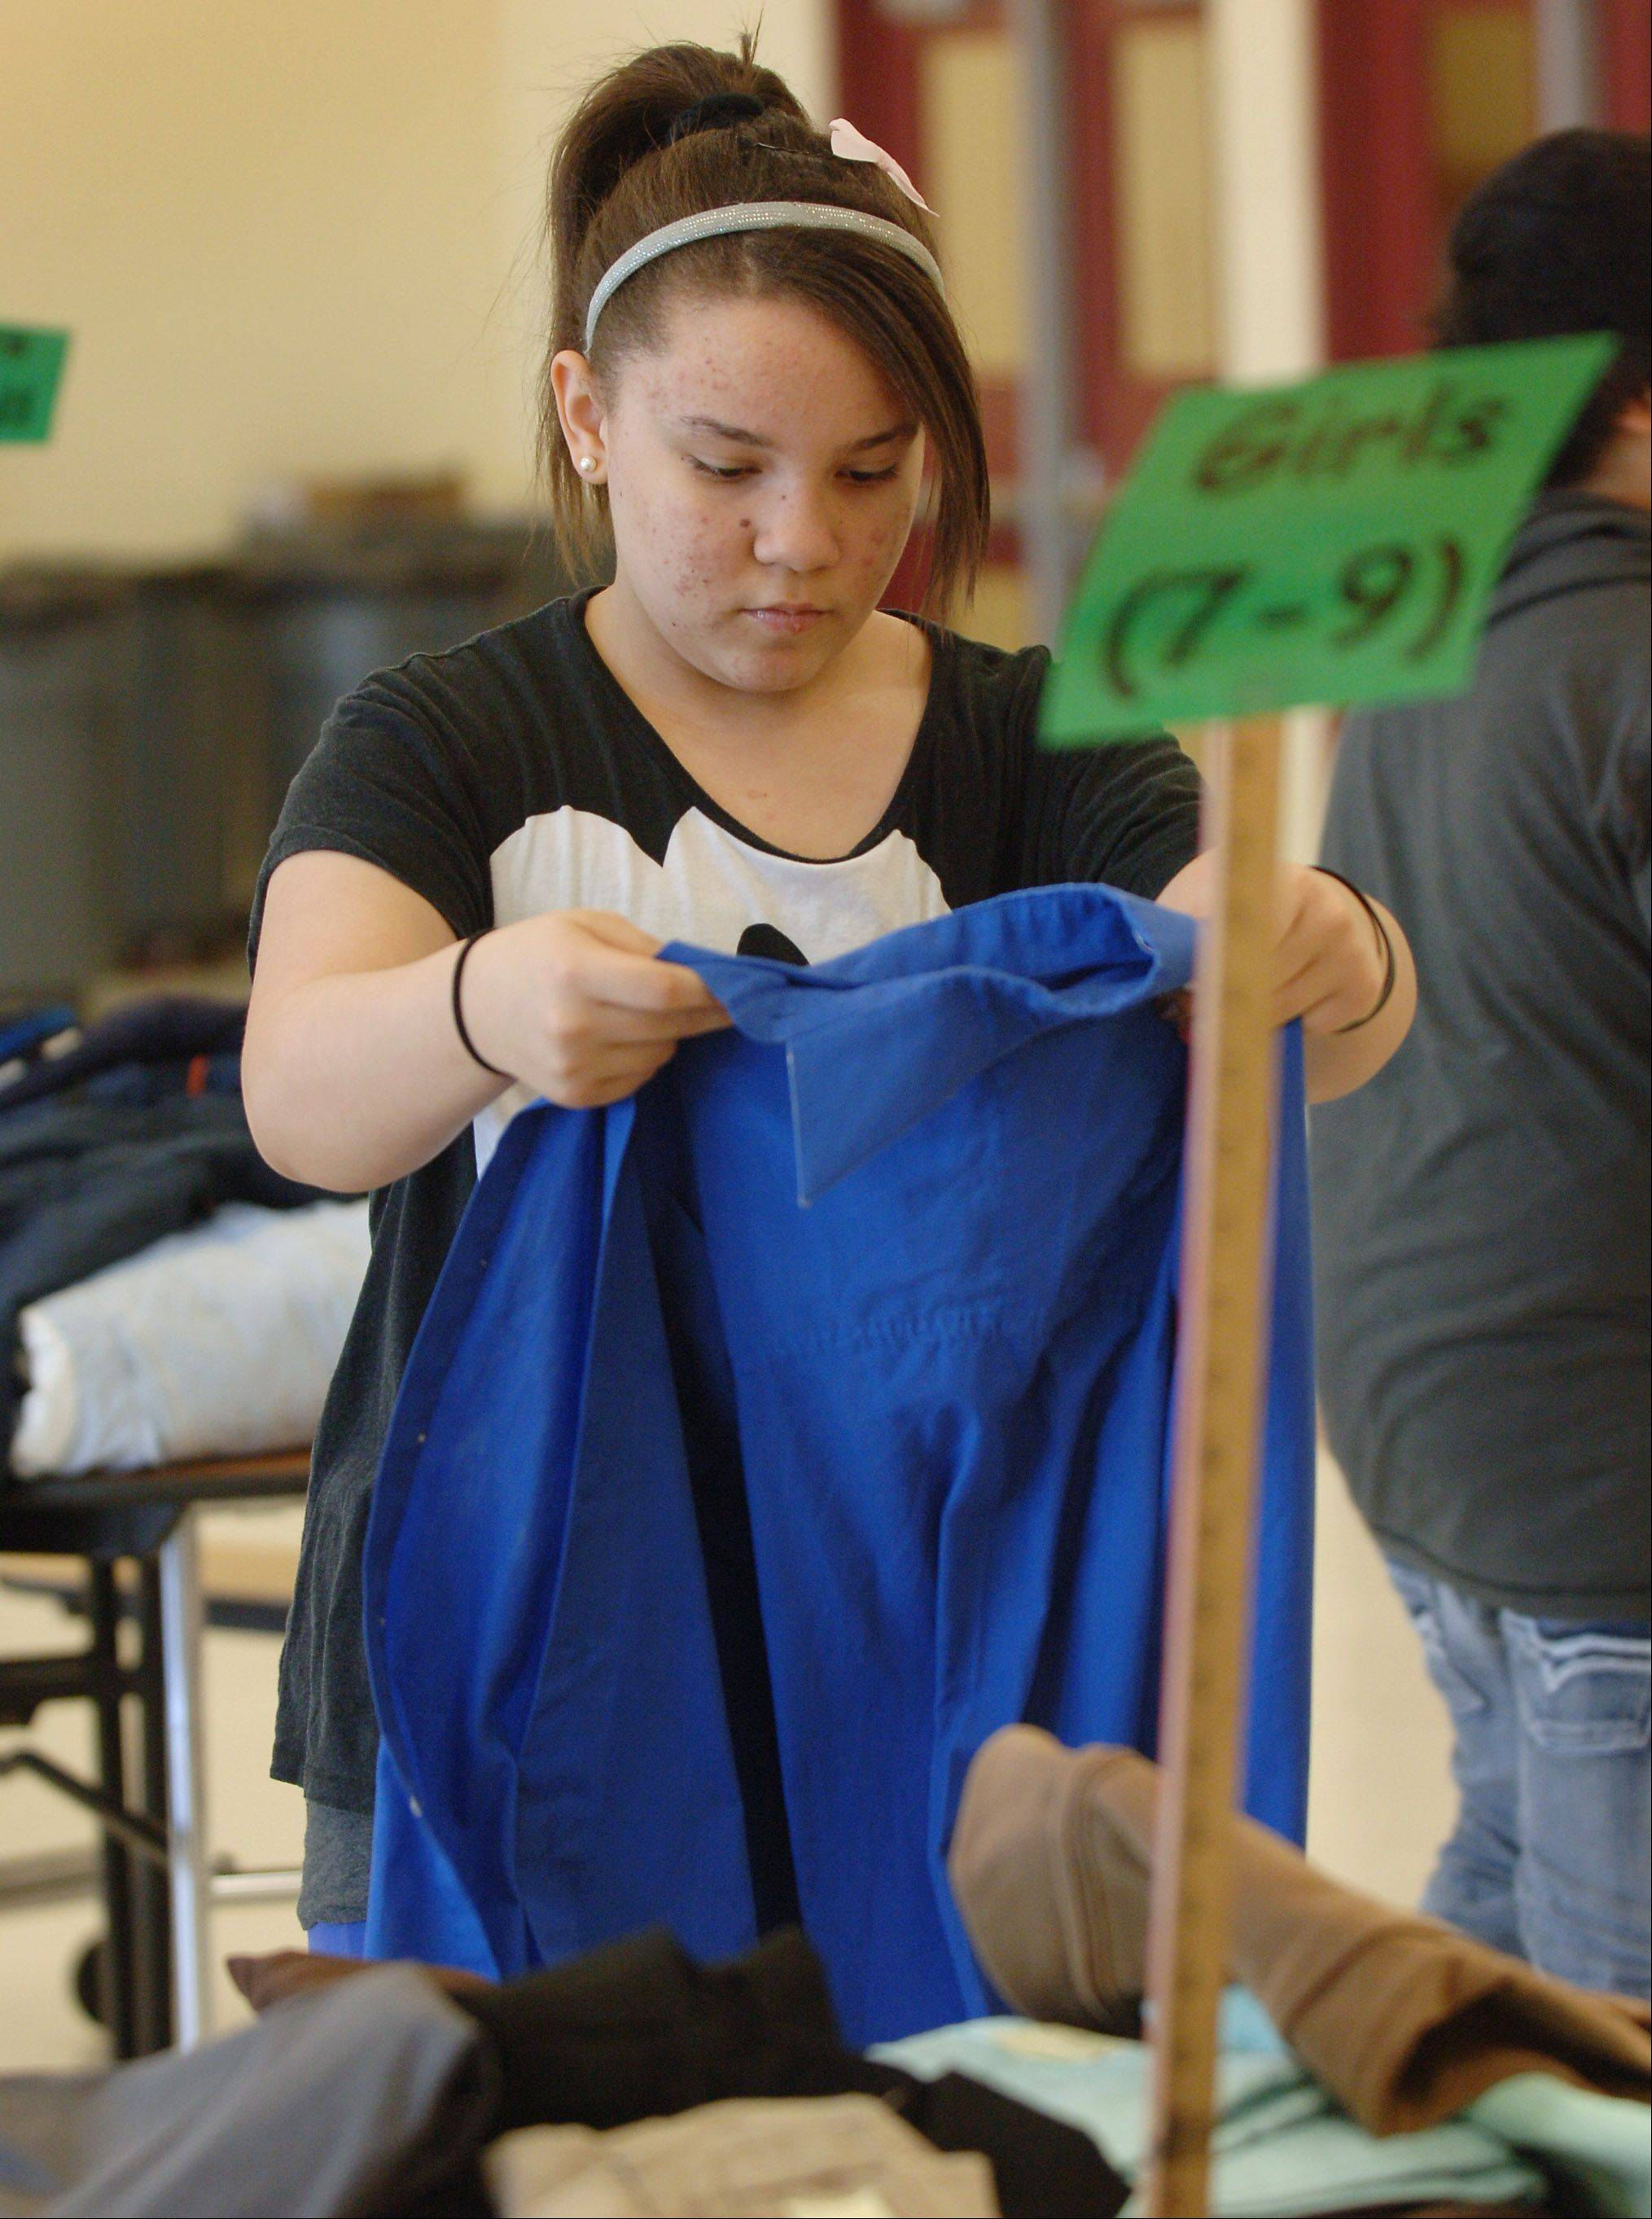 The John T. Magee Middle School BIONIC (Believe It or Not I Care) group held a free clothing give-a-way during the school's parent-teacher conferences on Thursday in Round Lake. BIONIC sixth grade member Symone Henderson folds clothes during the event.